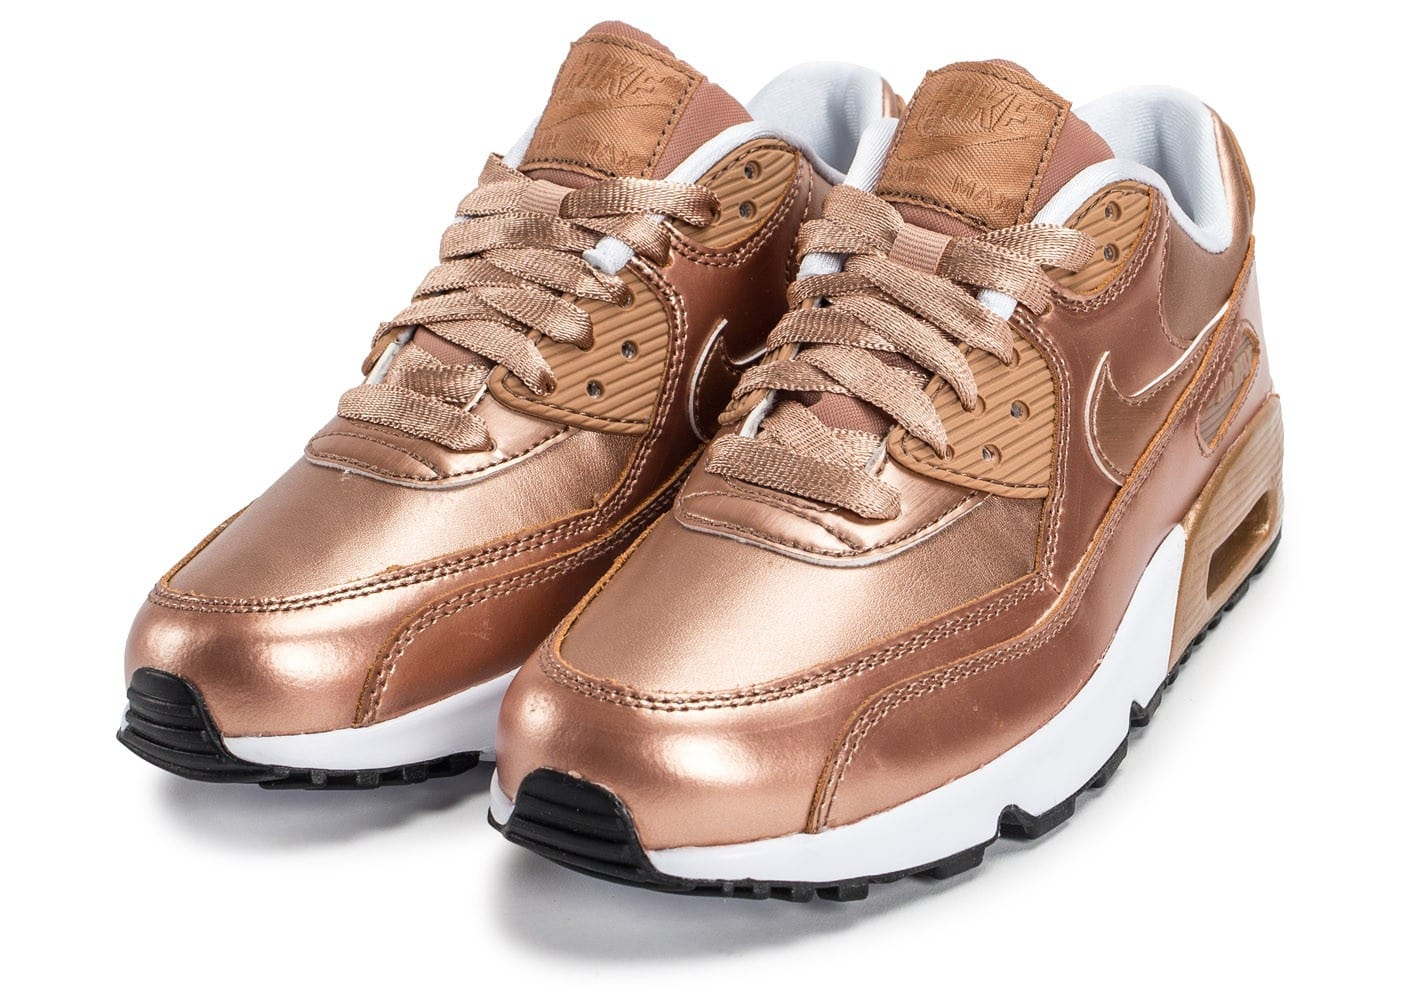 Nike Air Max 90 SE Leather Metallic Bronze Chaussures